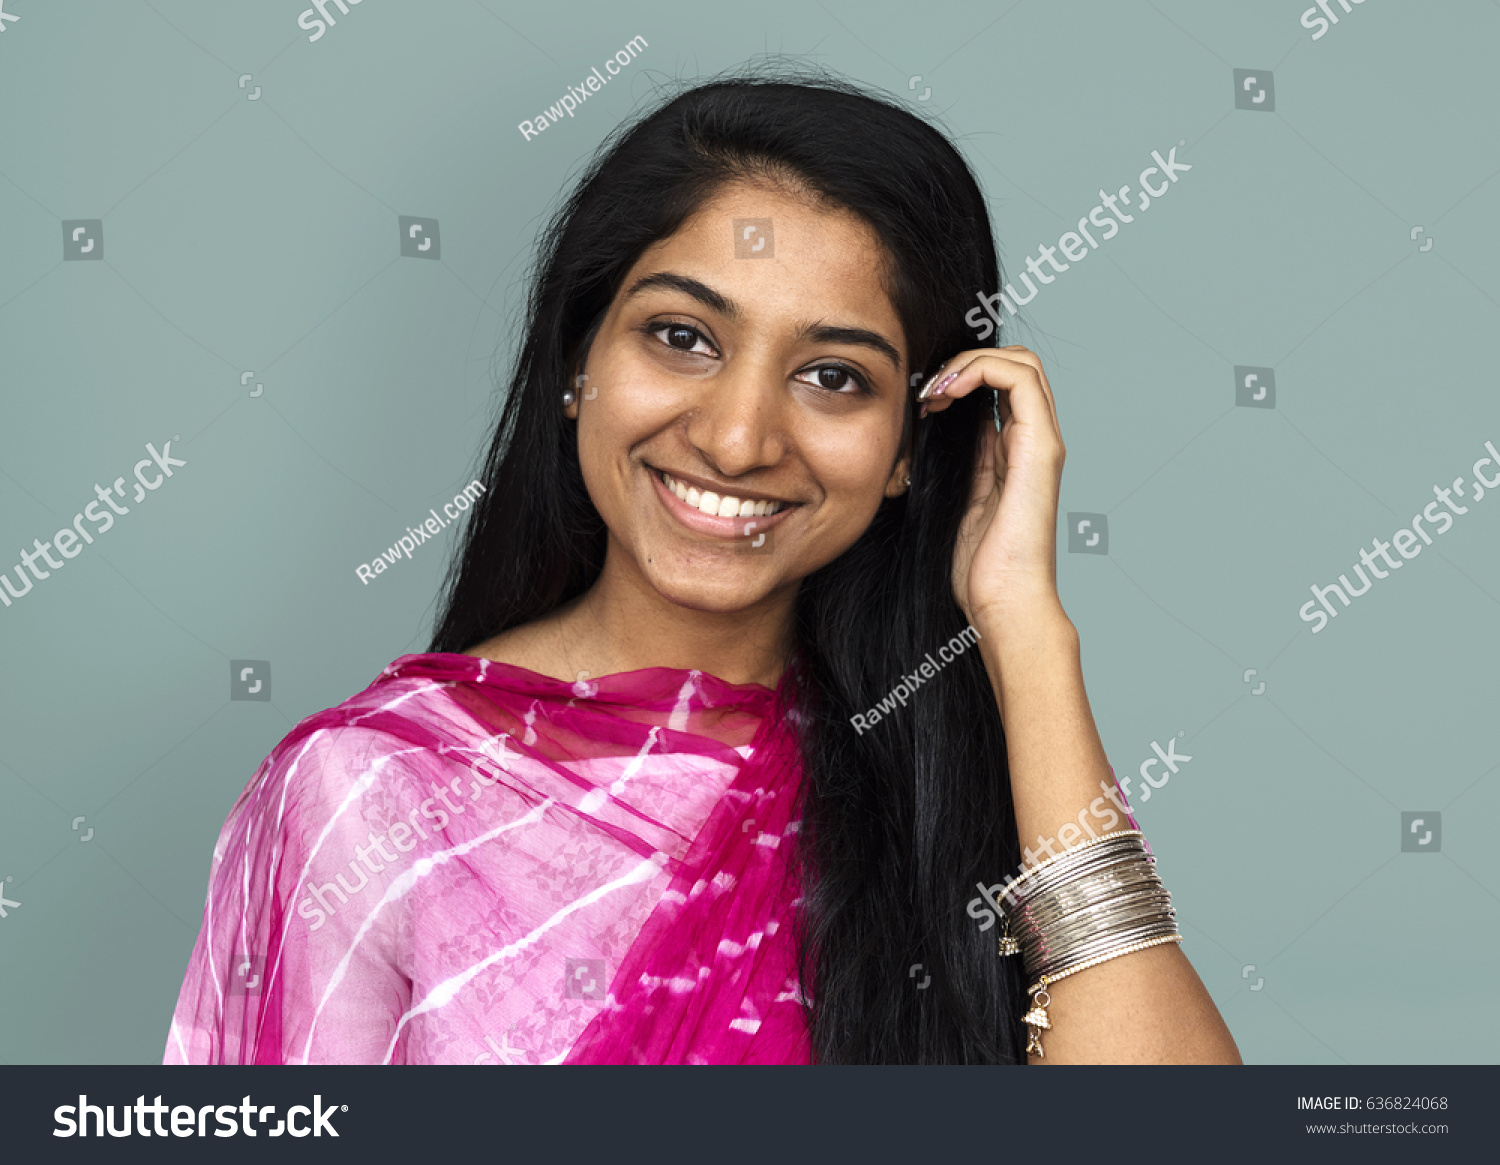 hindu single women in studio city The status of women in india has been subject to in the wake of several brutal rape attacks in the capital city of the position of women in hindu.